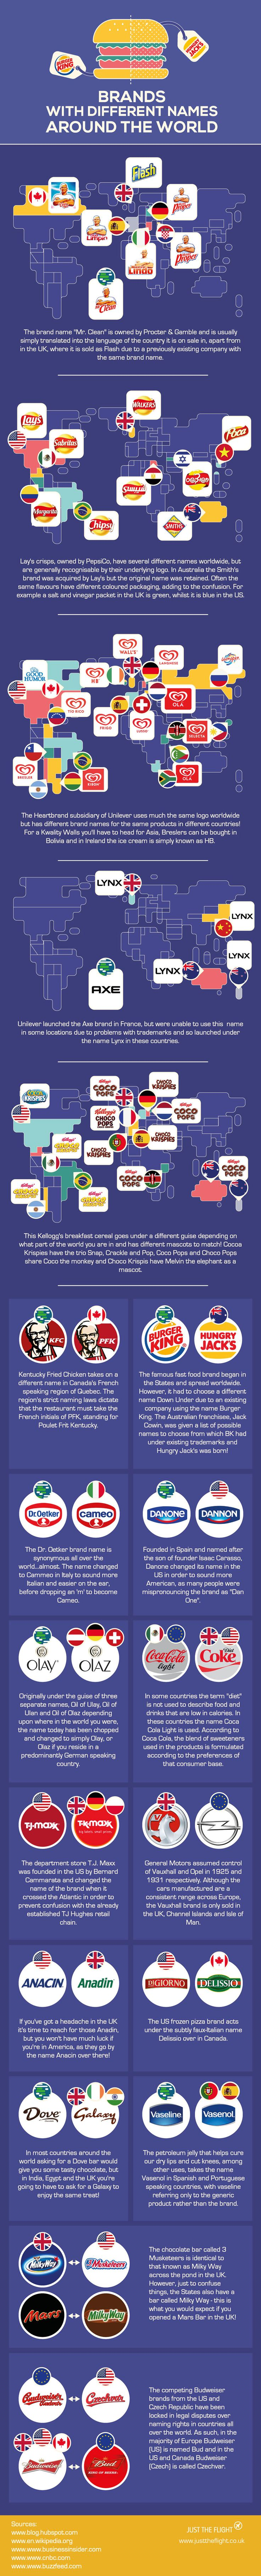 Burger king logo design and history of burger king logo - Brands With Different Names Around The World Infographic Topic Corporate Brand Corporation